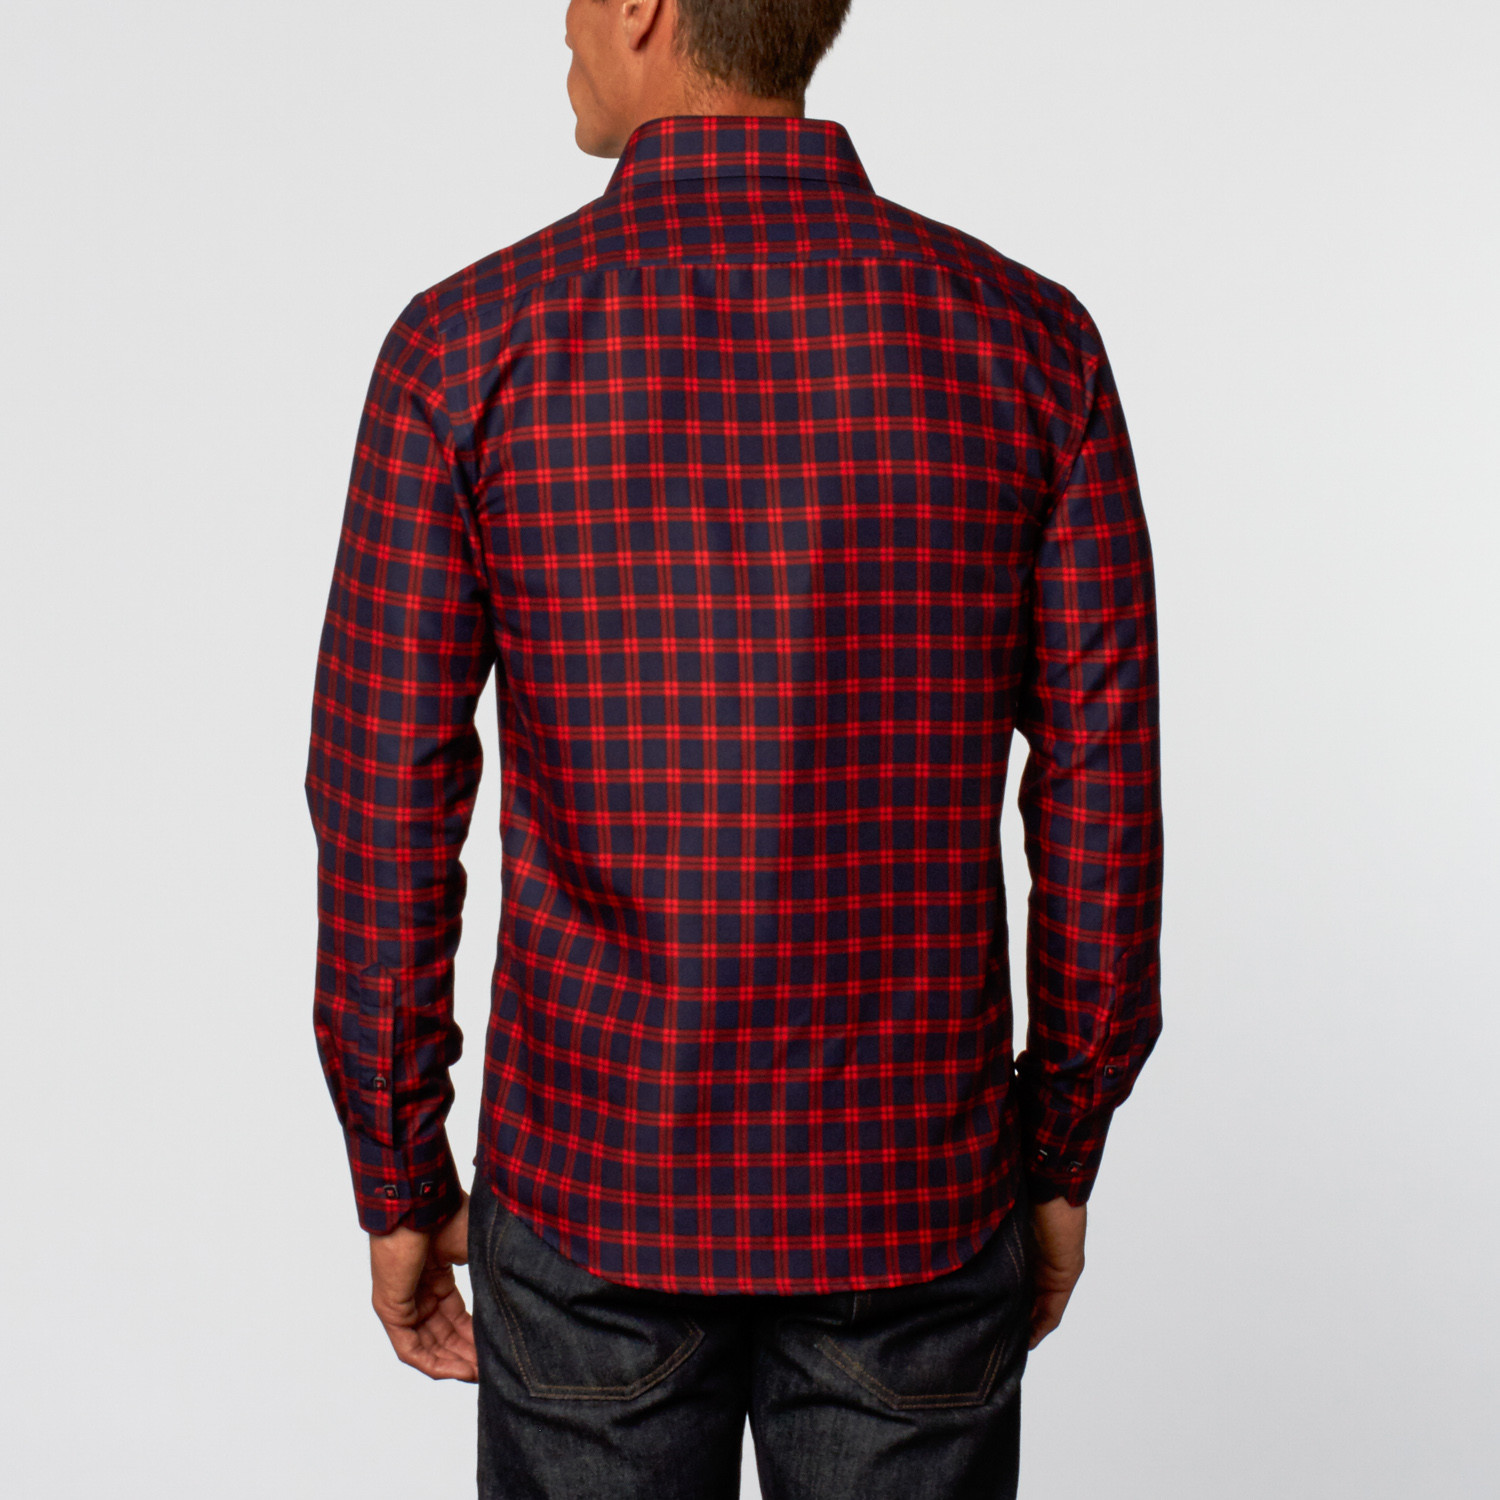 Grid Button Up Shirt Navy Red S Rosso Milano